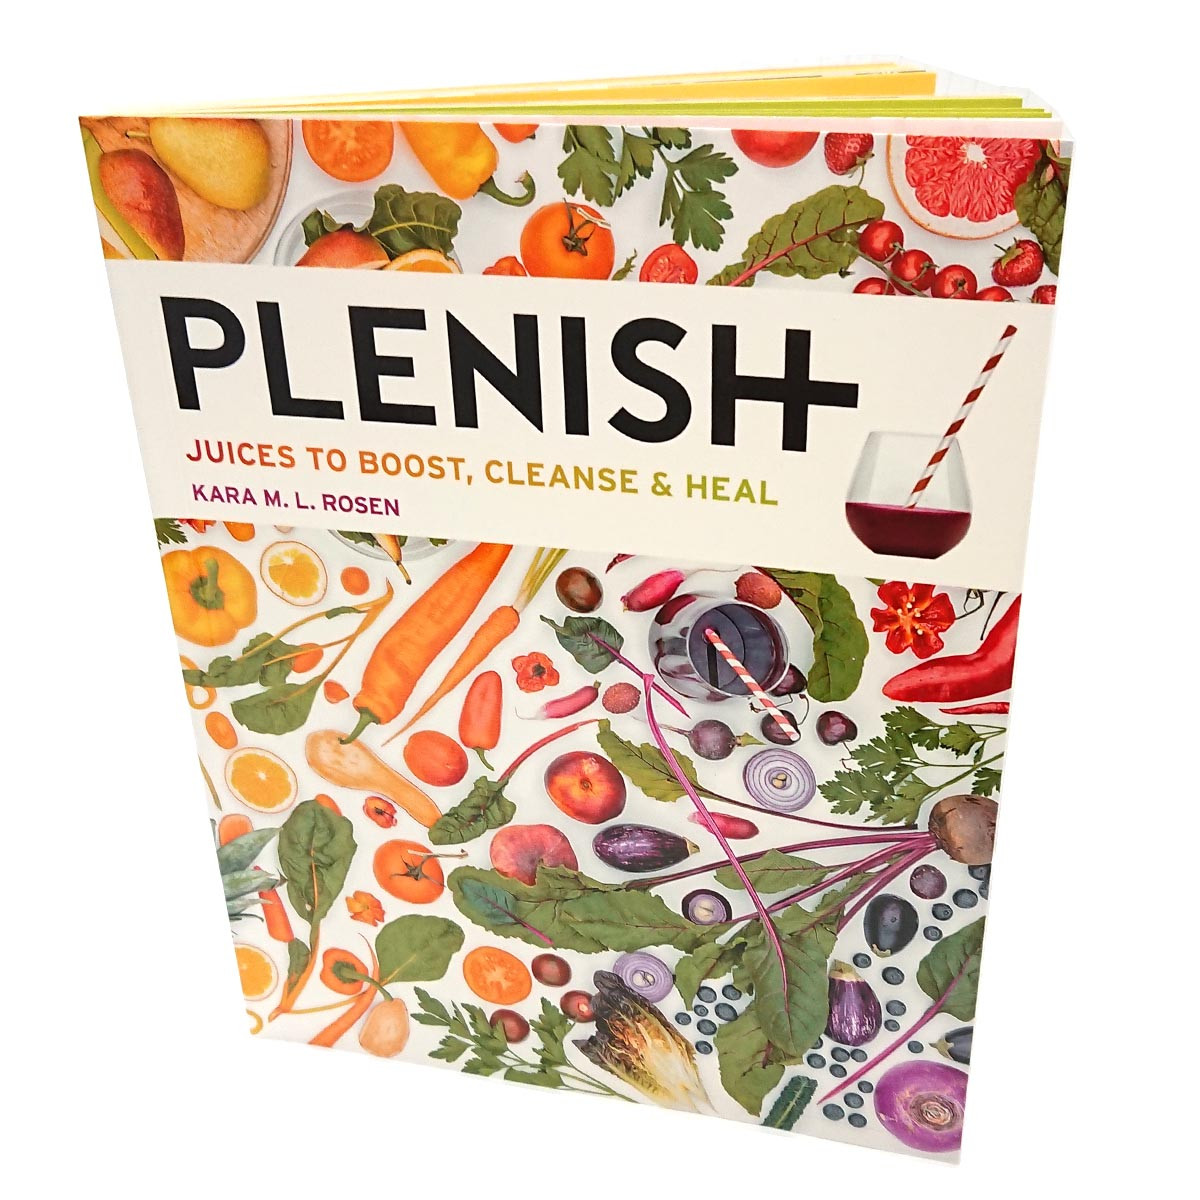 PLENISH - Juicing Book